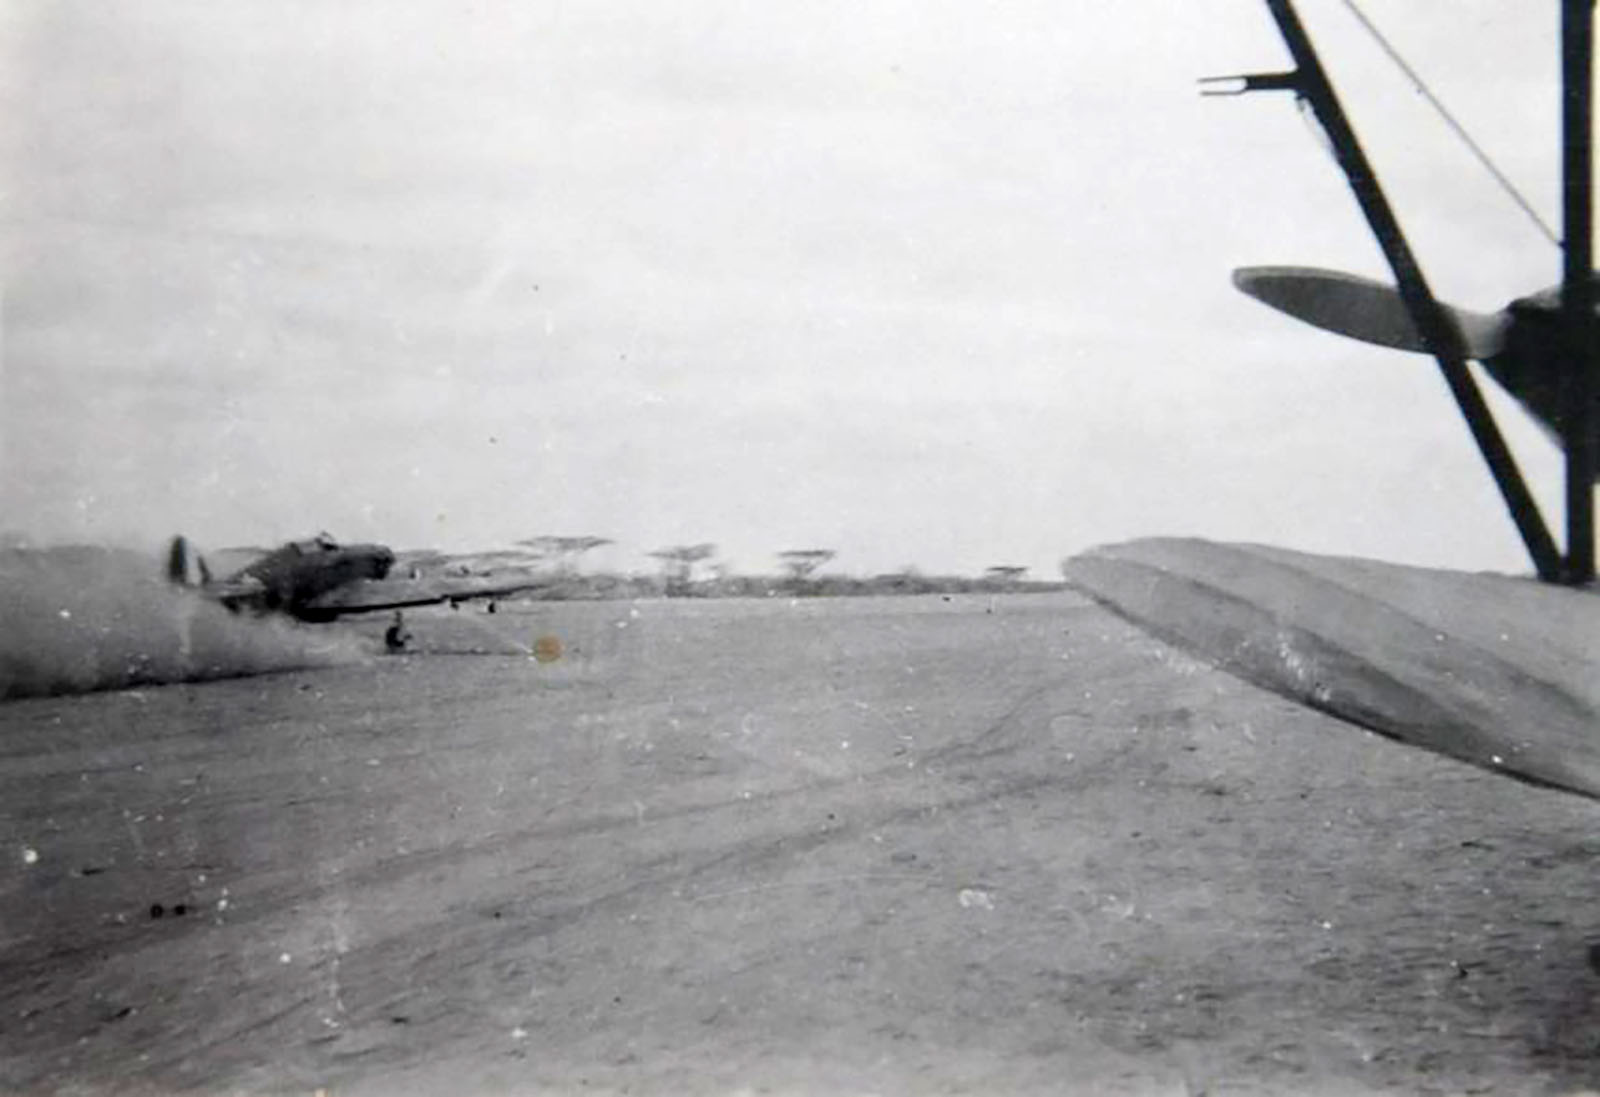 Hurricane I Trop SAAF 3Sqn unknown aircraft taxing Ethiopia East Africa March 1941 03